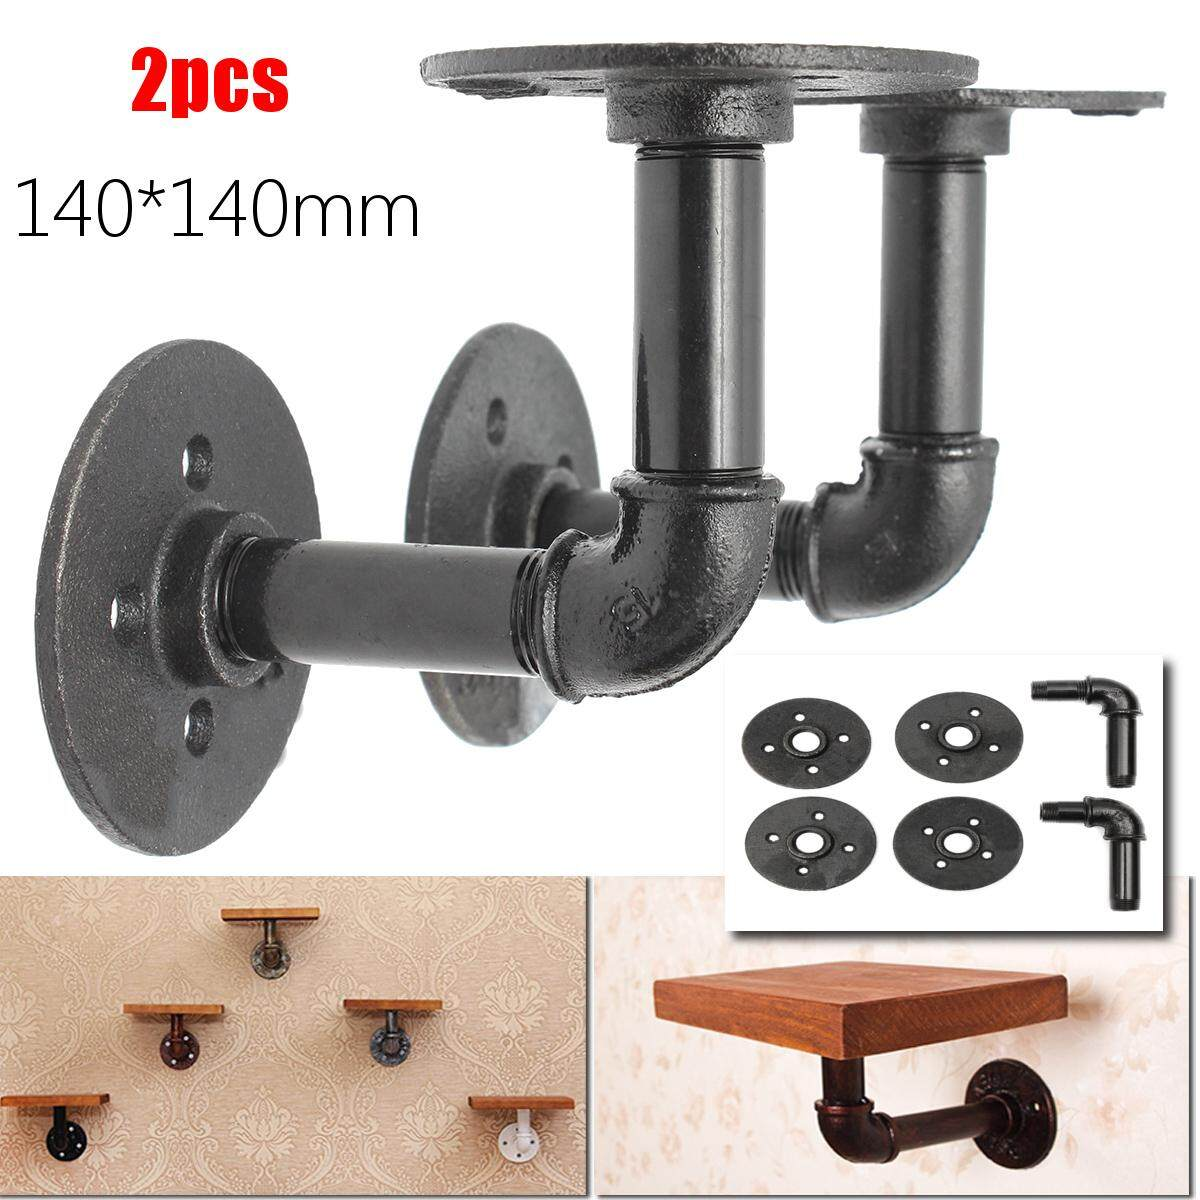 2pcs Steampunk Industrial Iron 3/4 Pipe Shelf Bracket Holder Retro Styles